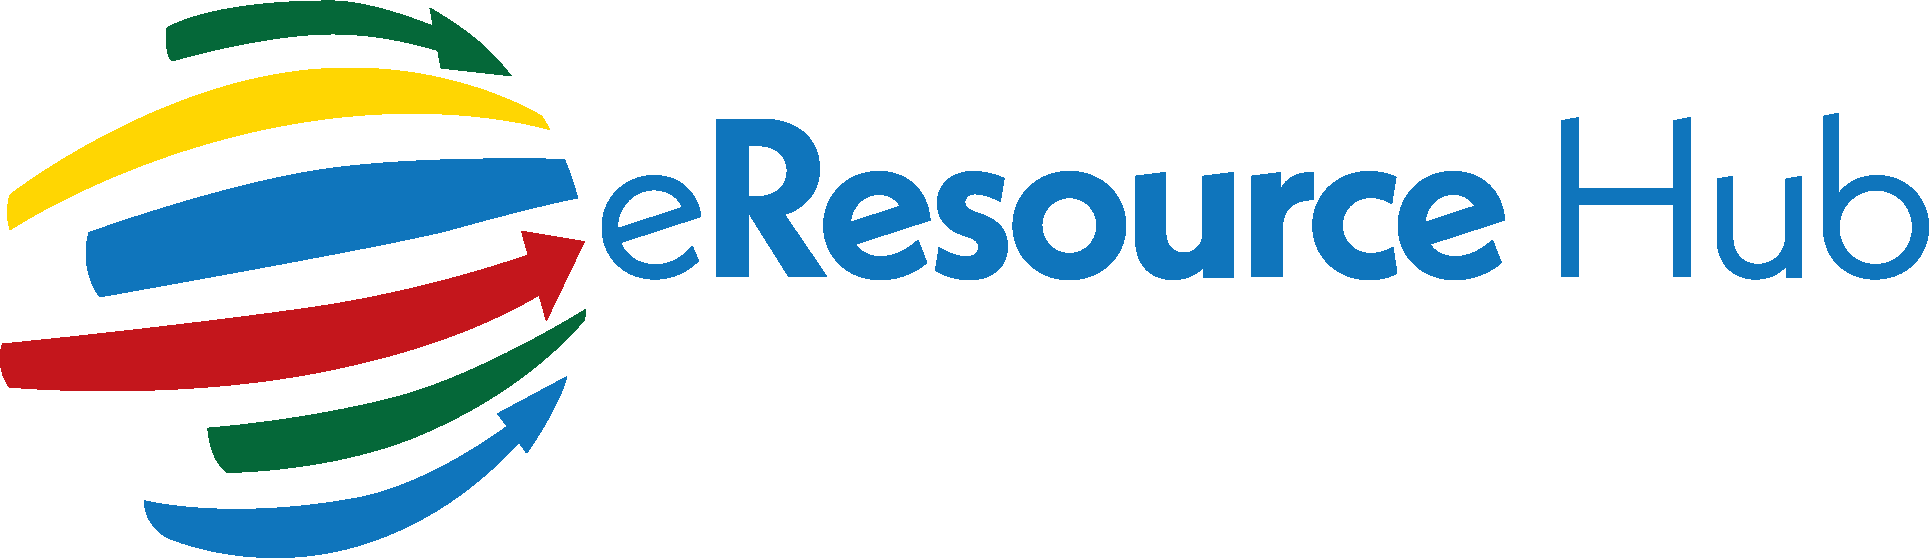 eResource Hub Inc.